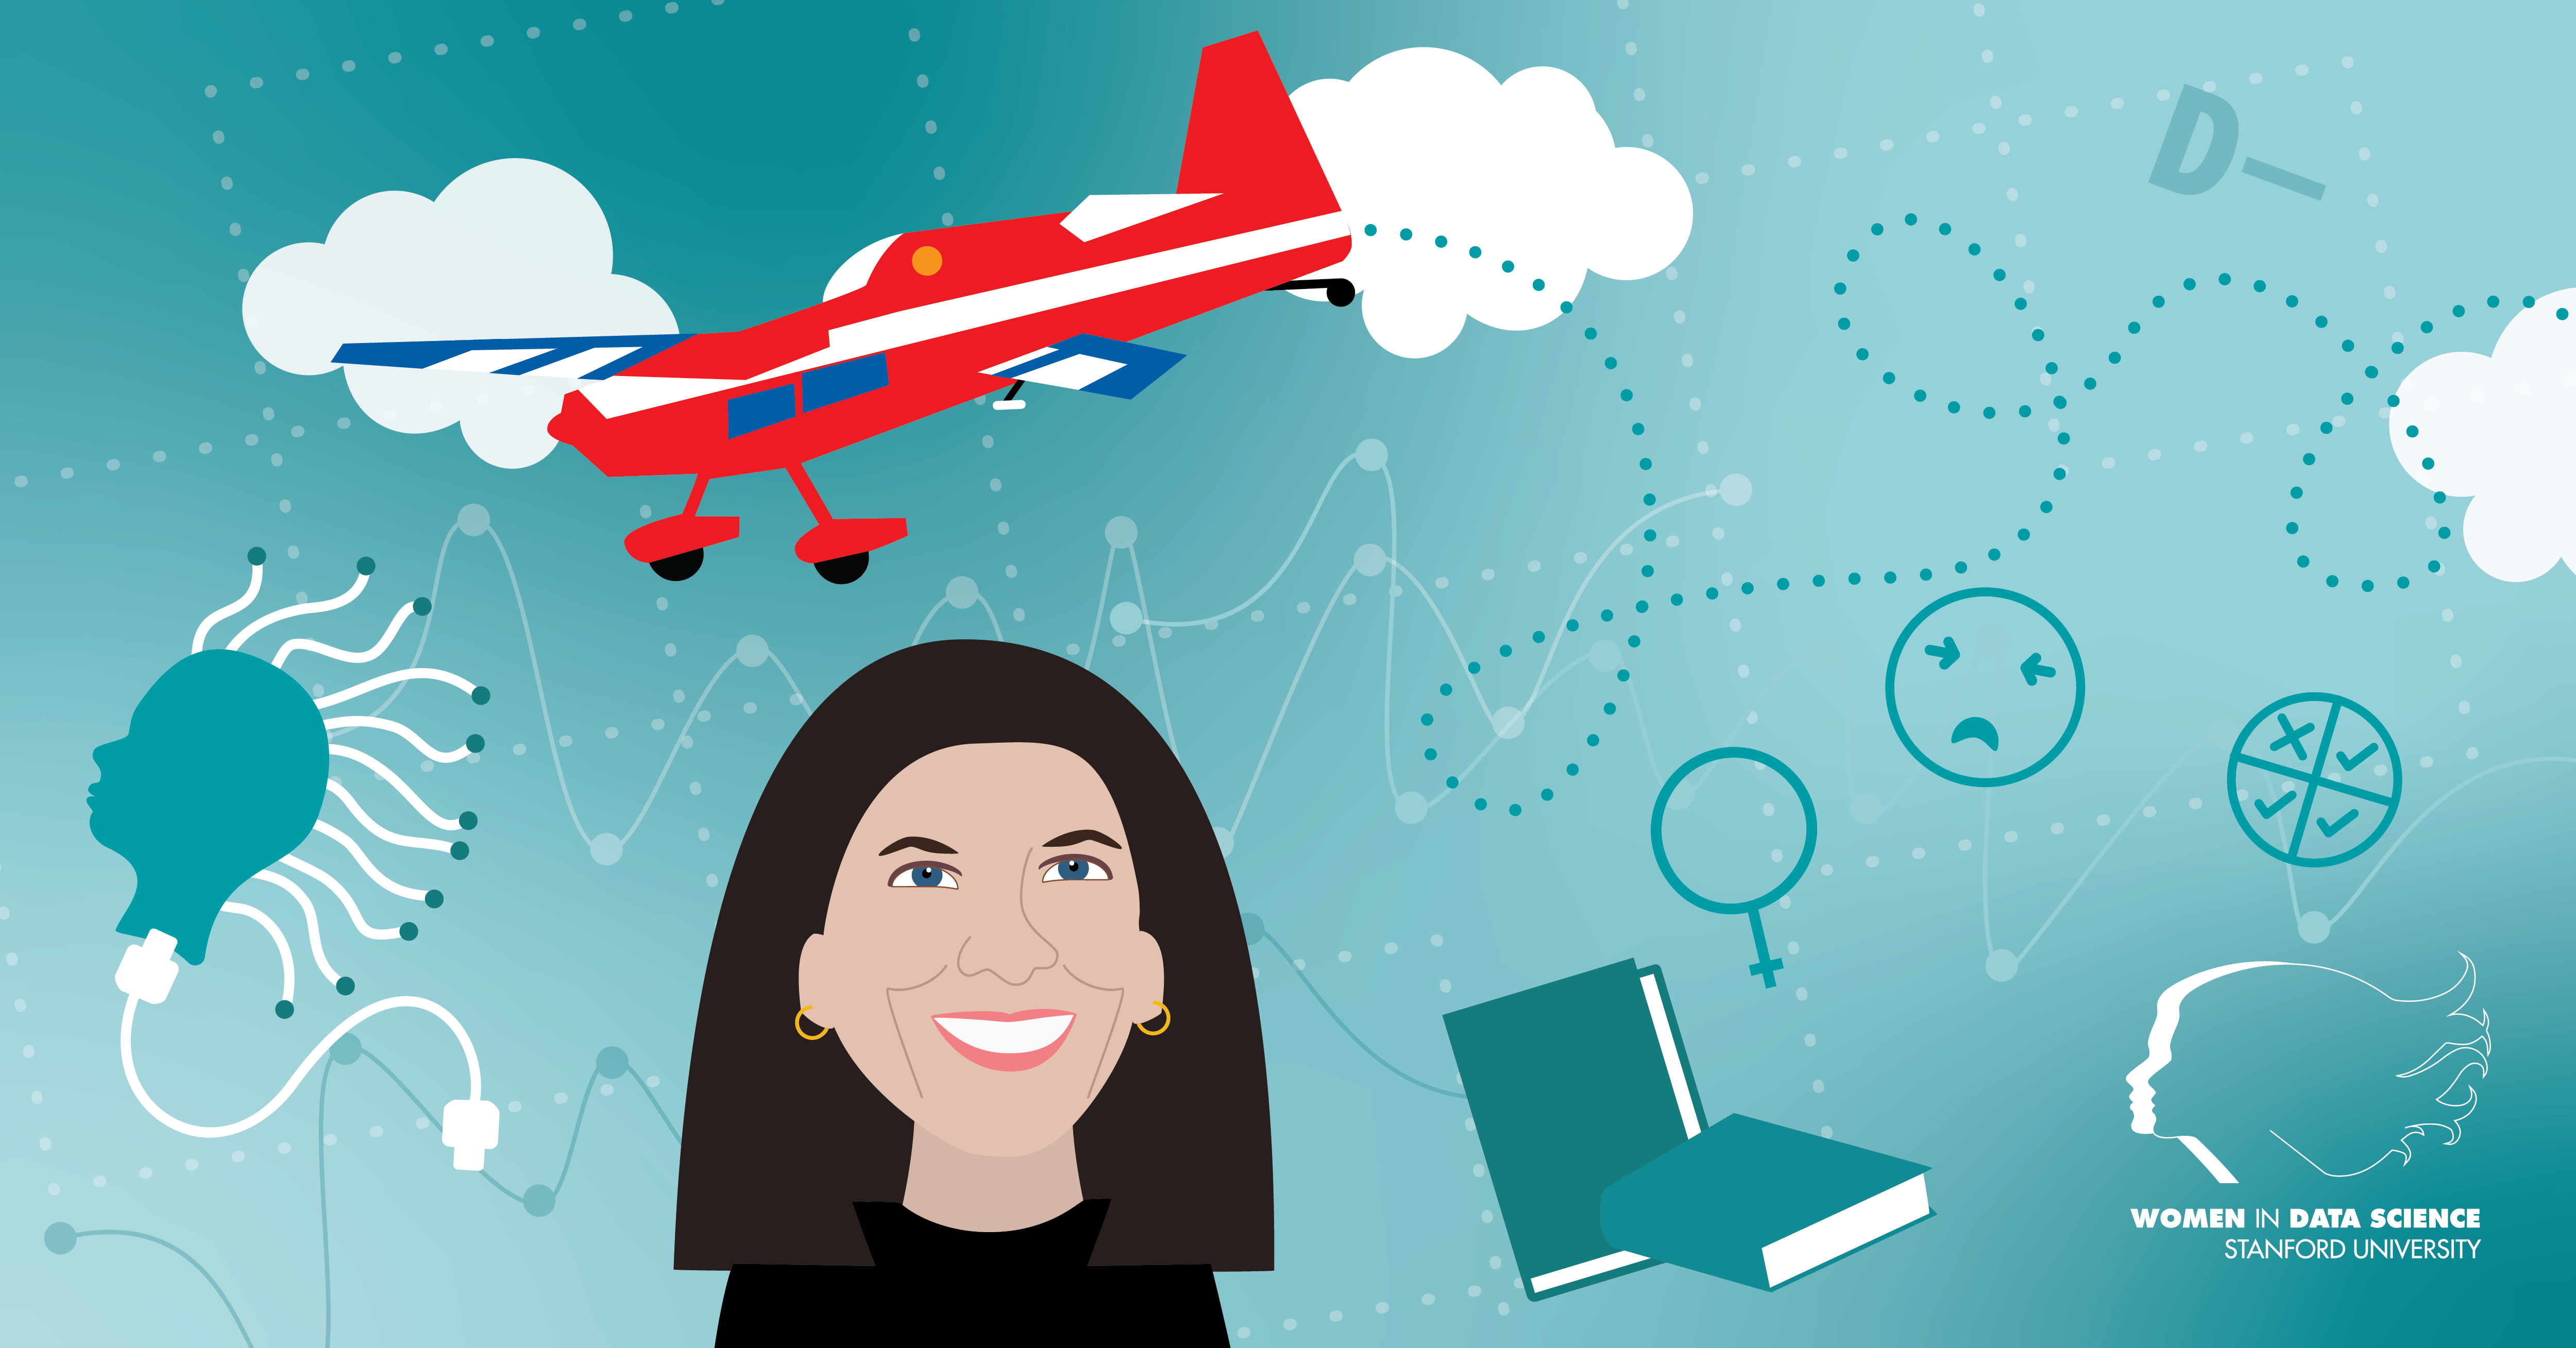 Illustration of Cecilia Aragon with a red plane behind her